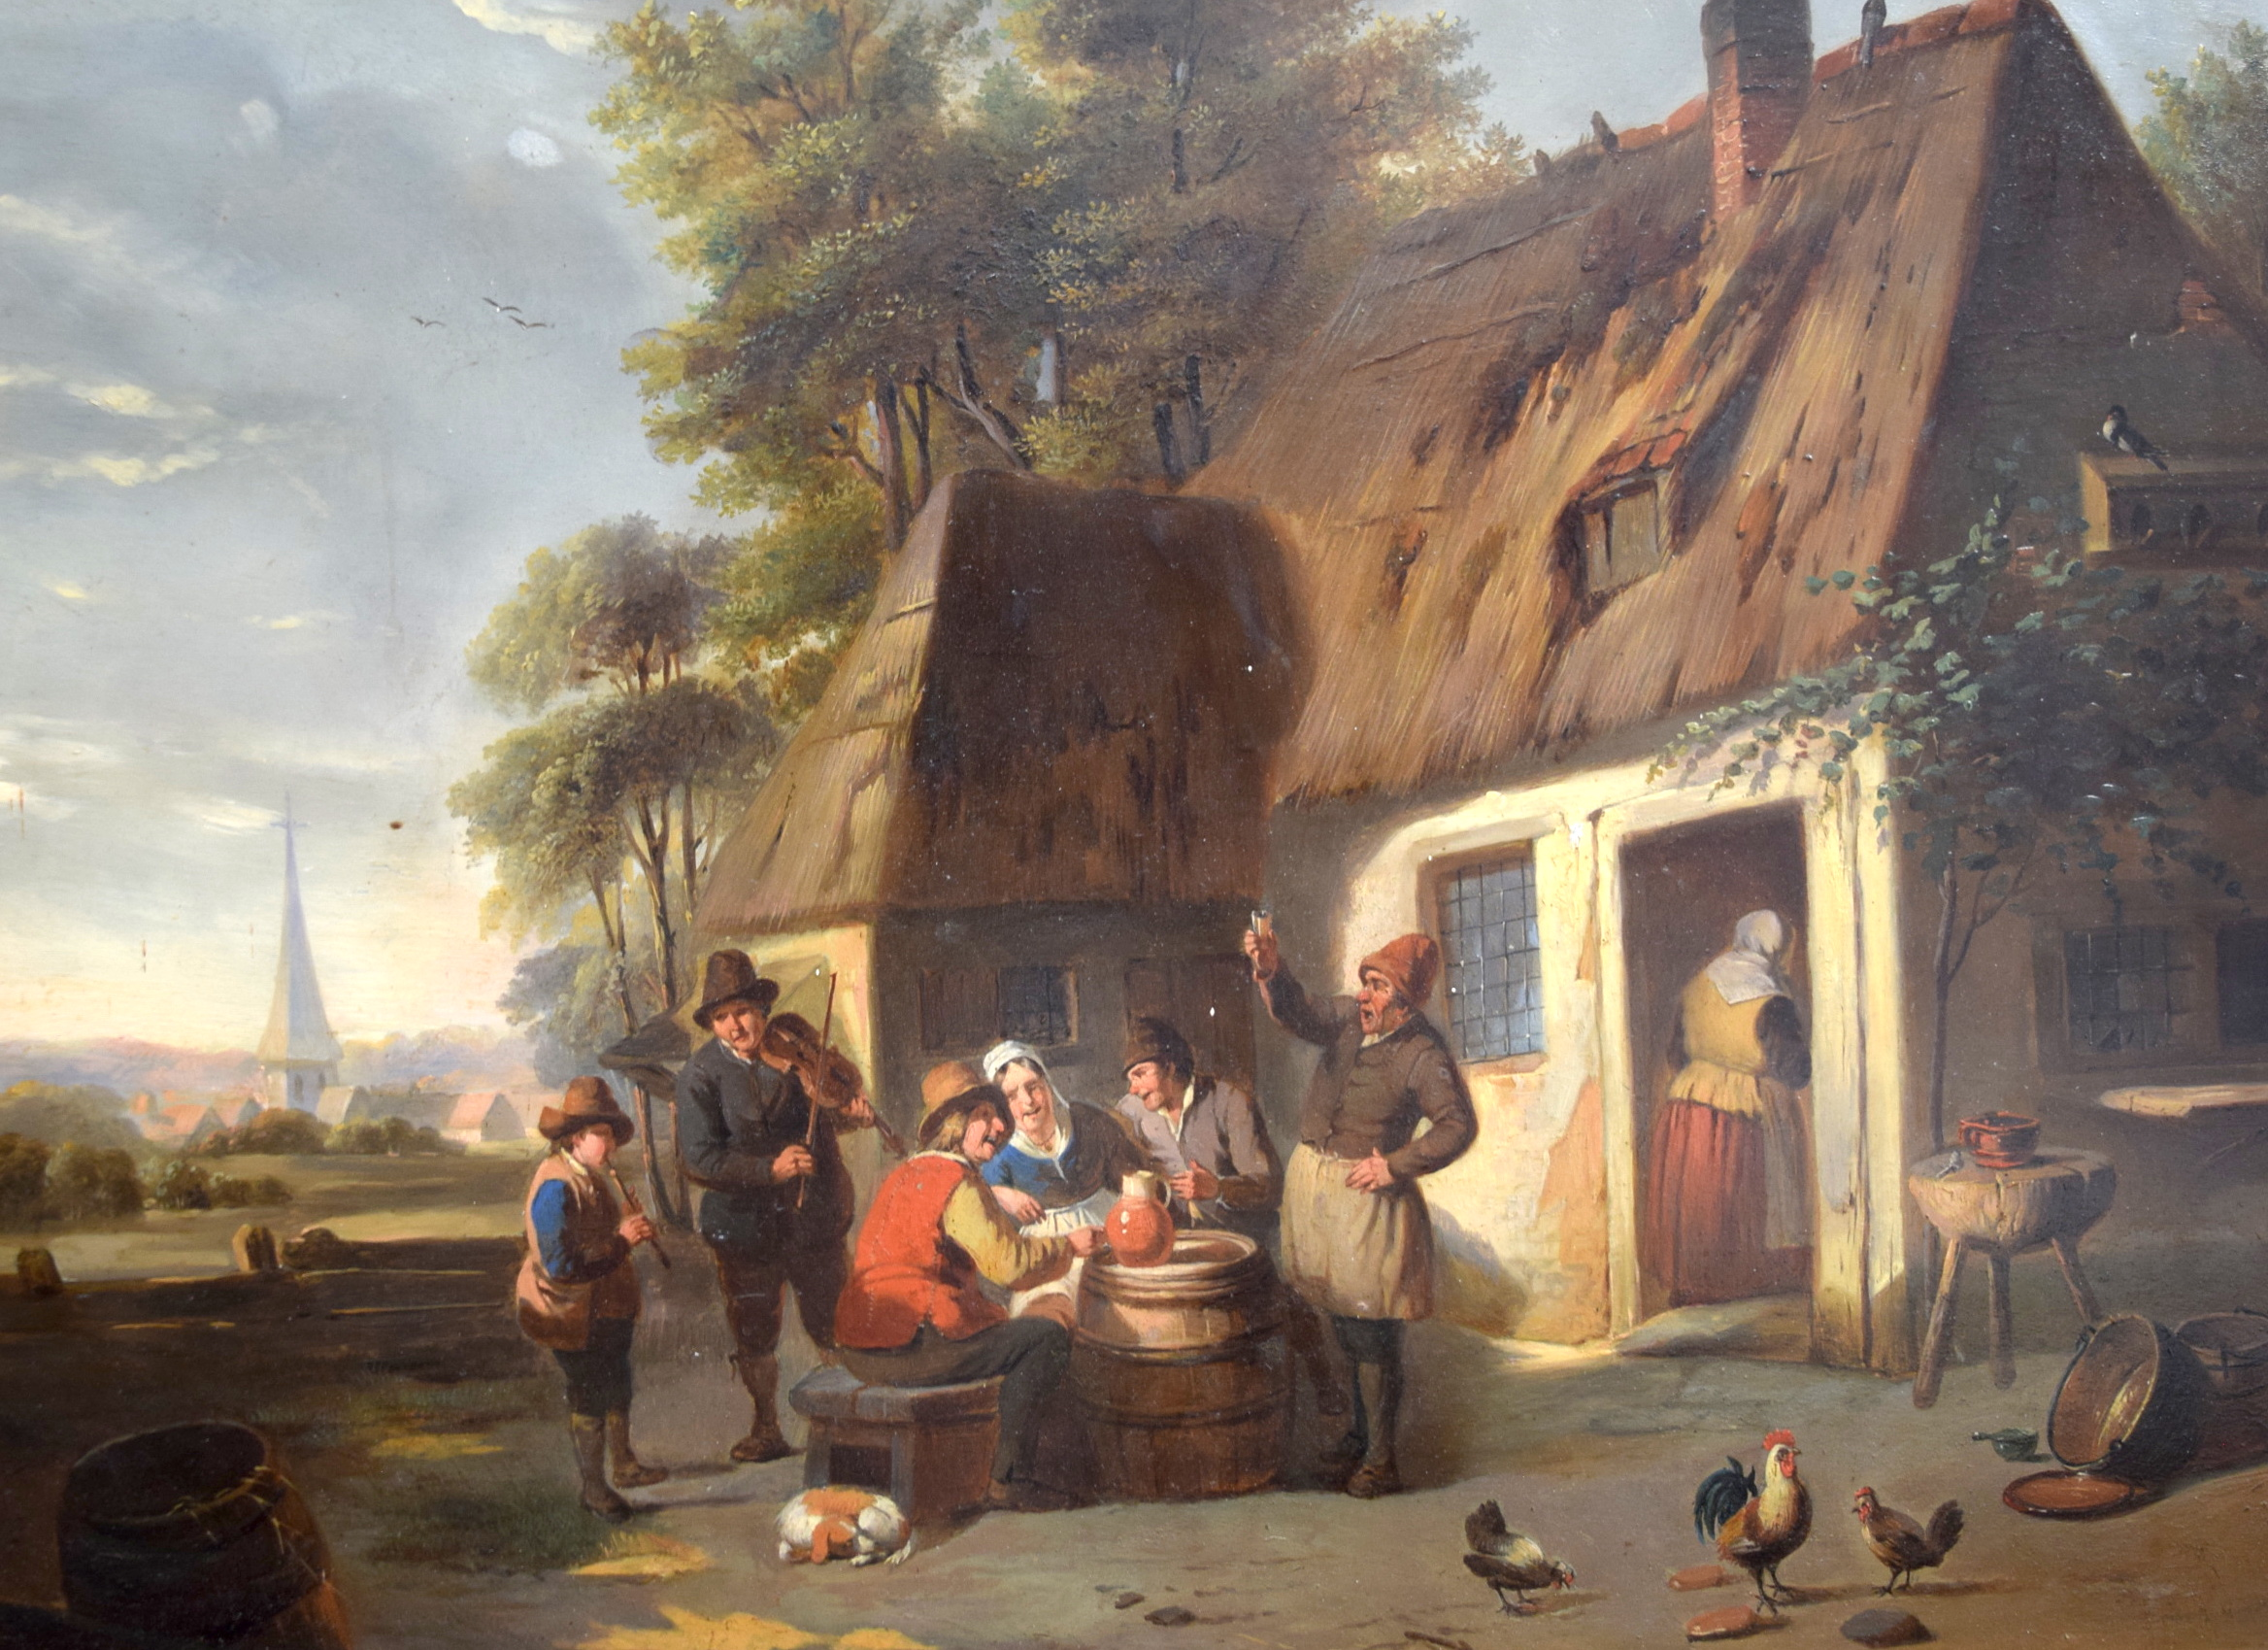 Lot 2869 - DUTCH SCHOOL (19th century) FRAMED OIL ON PANEL, figures enjoying life in the street, unsigned. 40.